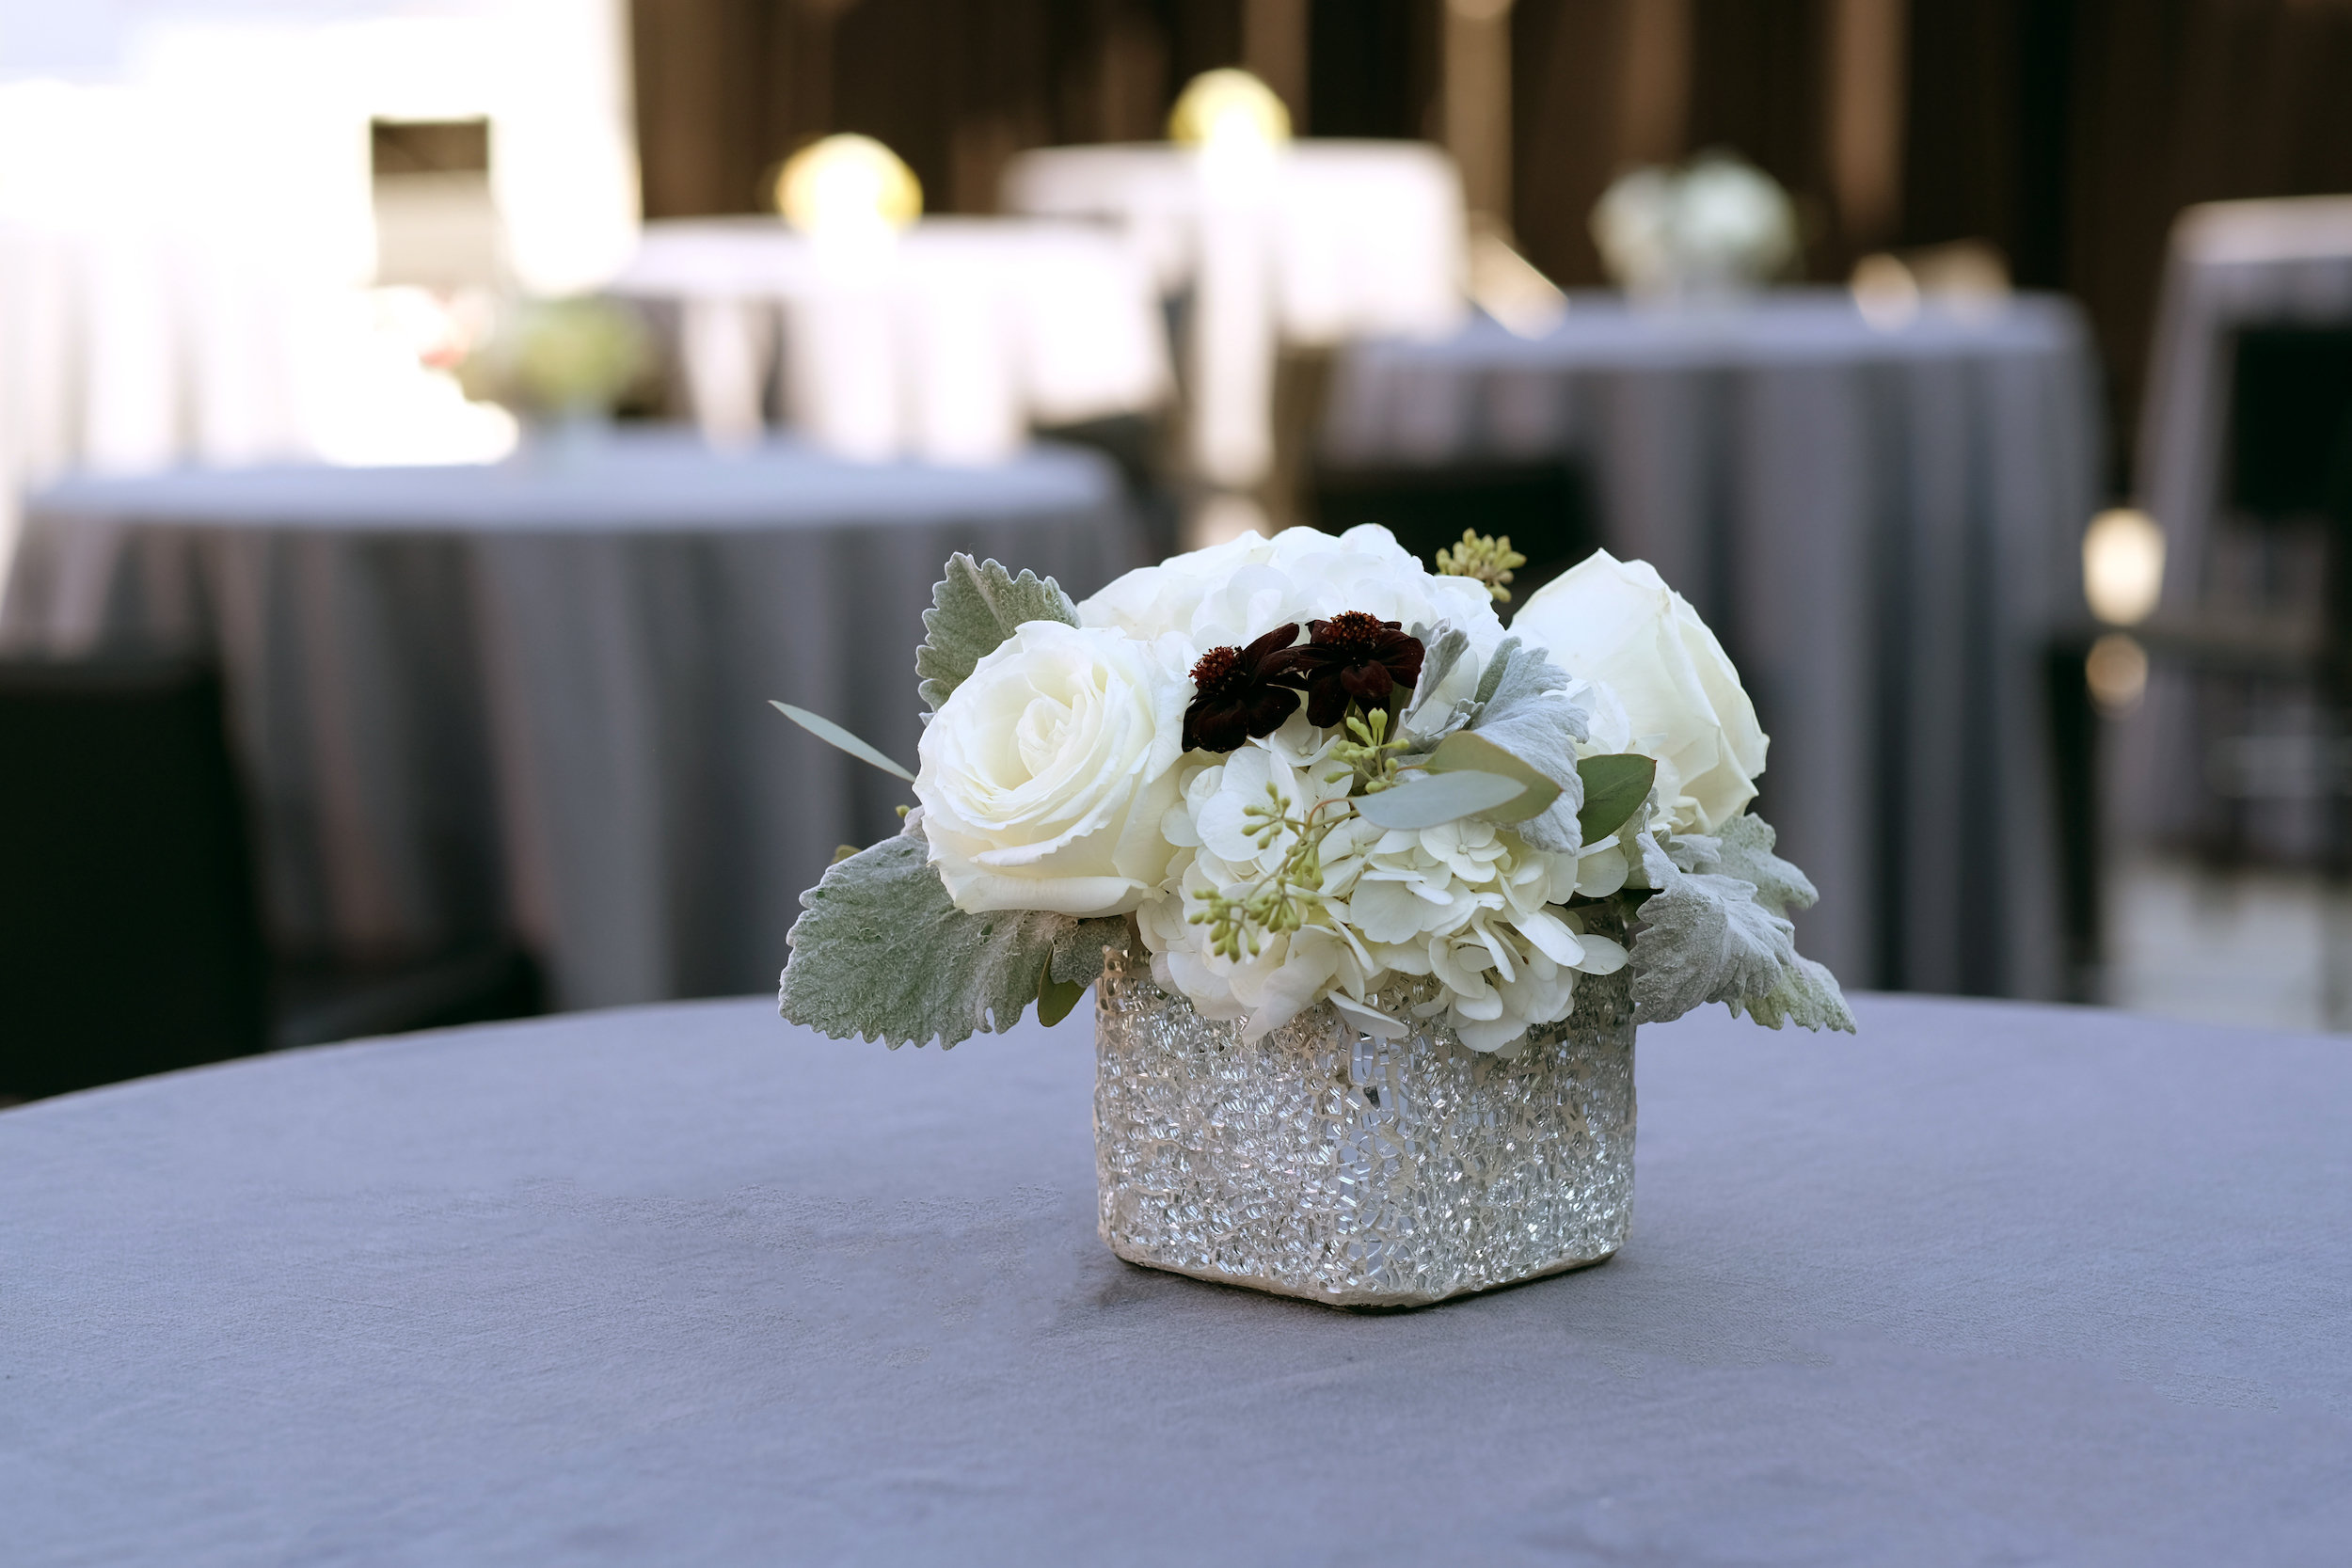 White Floral Centerpiece With Hints of Burgundy